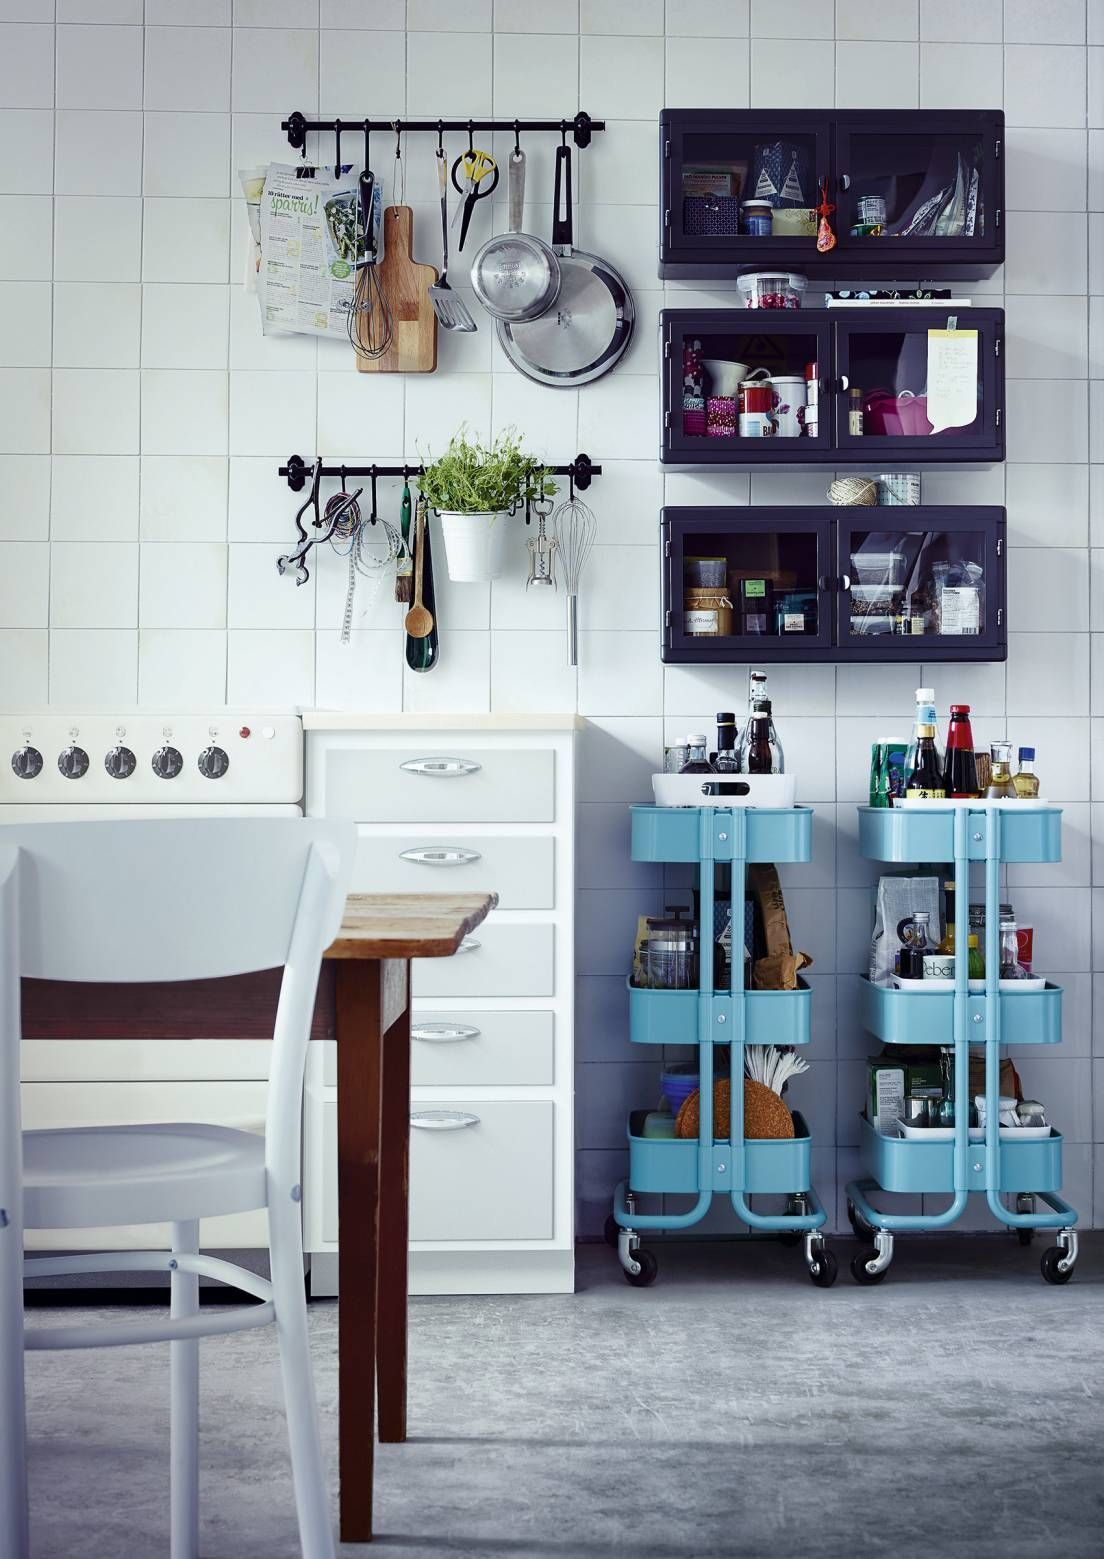 Pin by tanja on keittiö | Pinterest | Housekeeping, Kitchens and ...